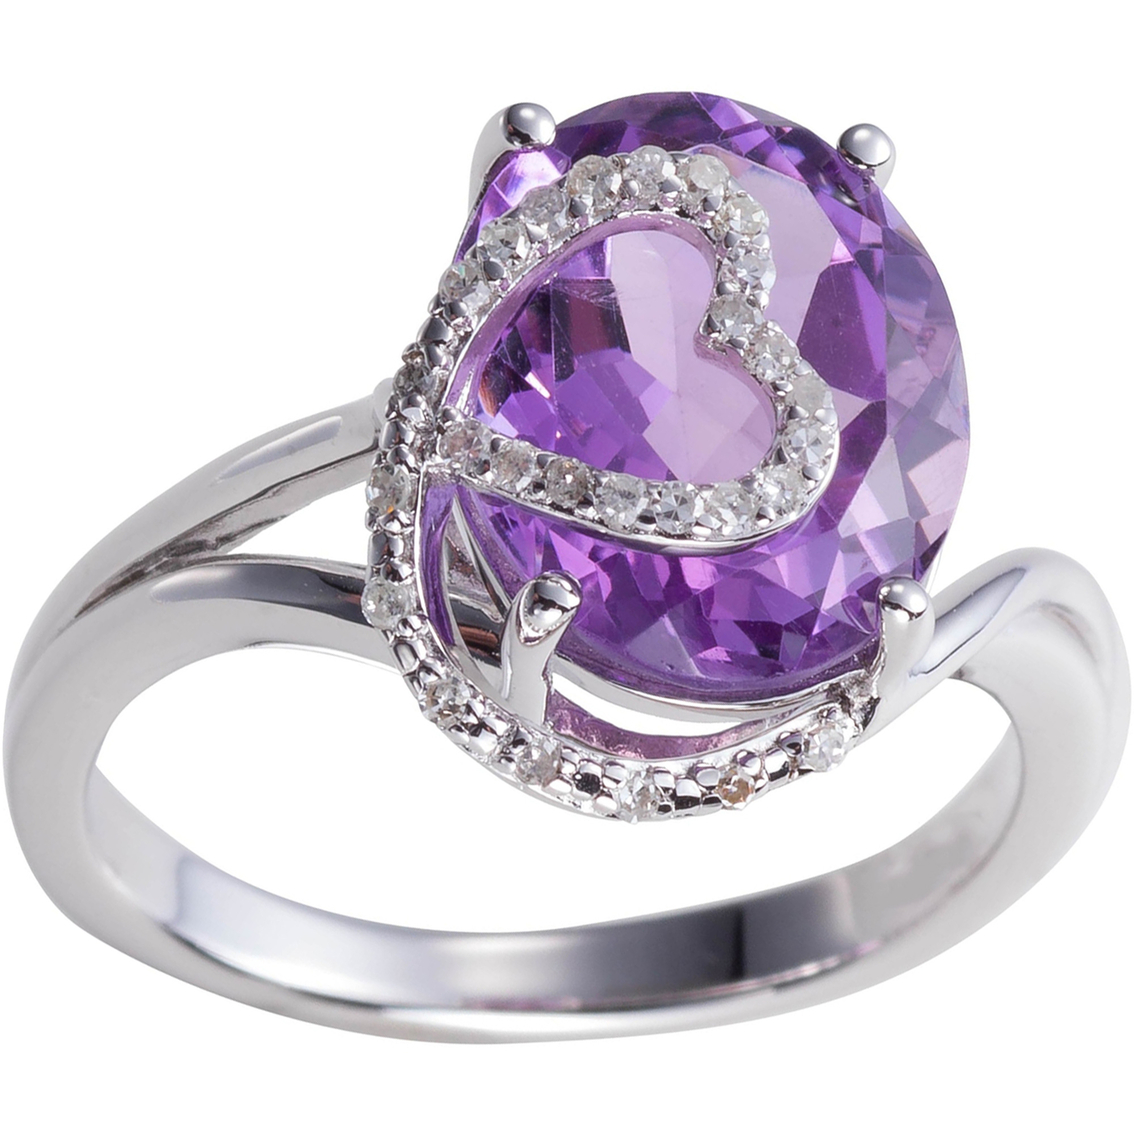 3bd1a79ad984b Sterling Silver Diamond Accent Amethyst Ring | Gemstone Rings ...